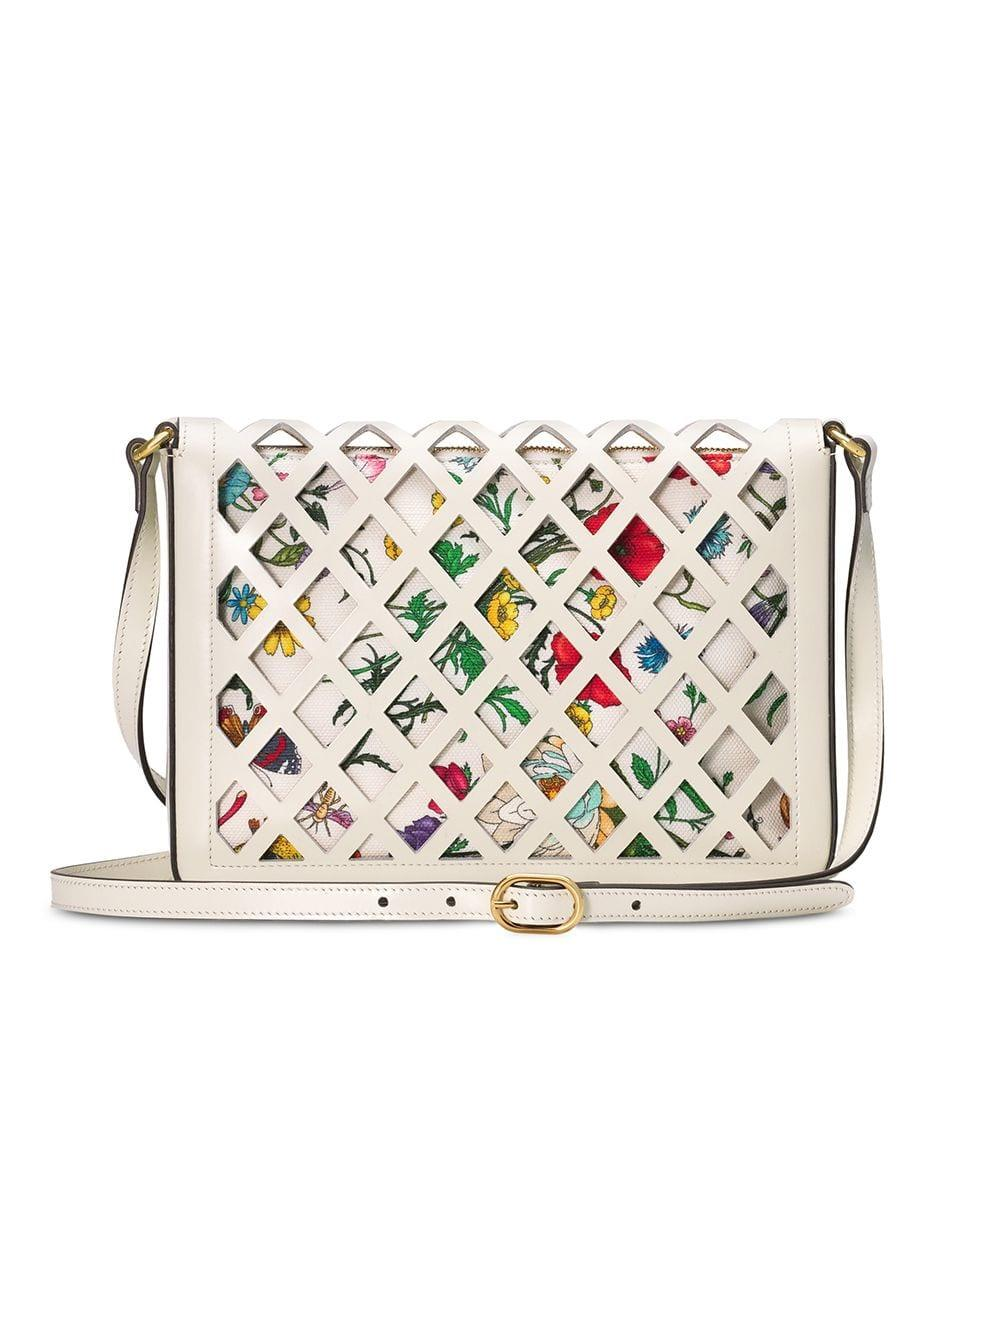 b505c5a87 Gucci Medium Cutout Leather Shoulder Bag in White - Lyst